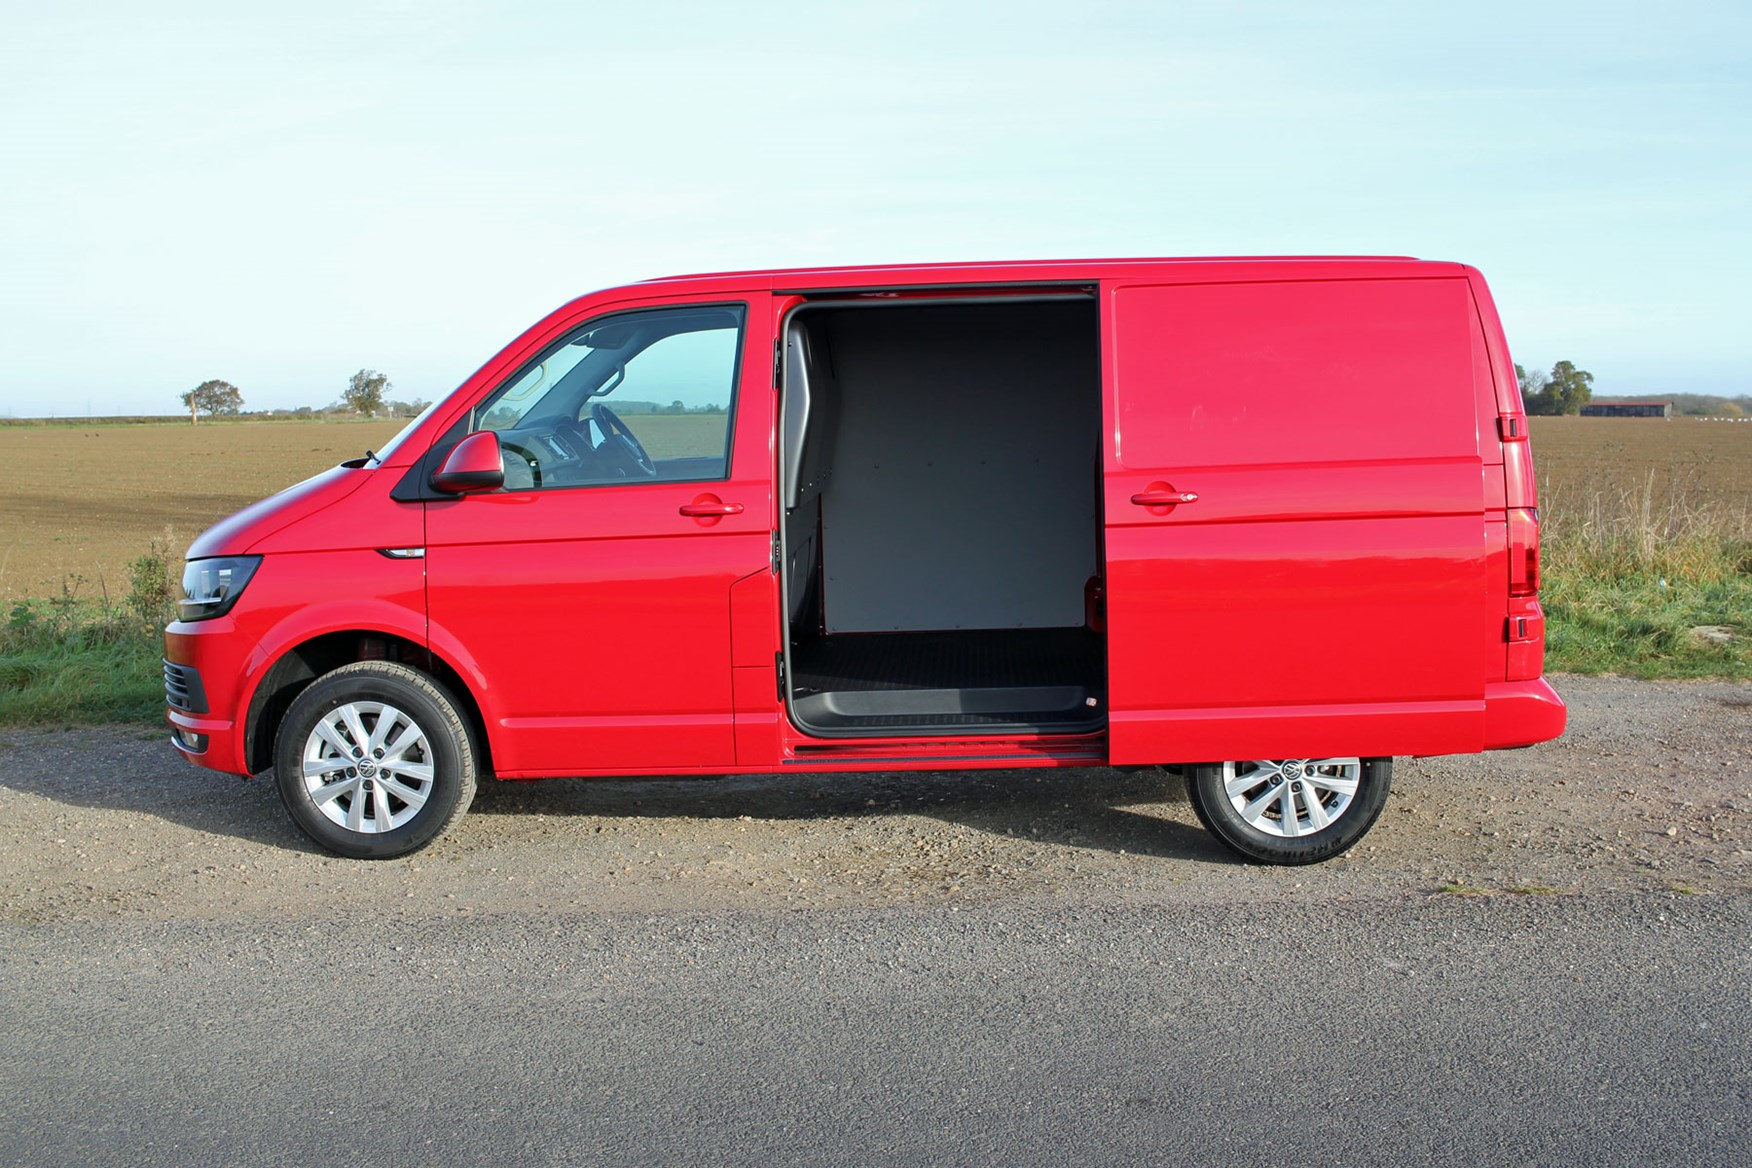 VW Transporter T6 TSI 150 review - side view, sliding door open, red